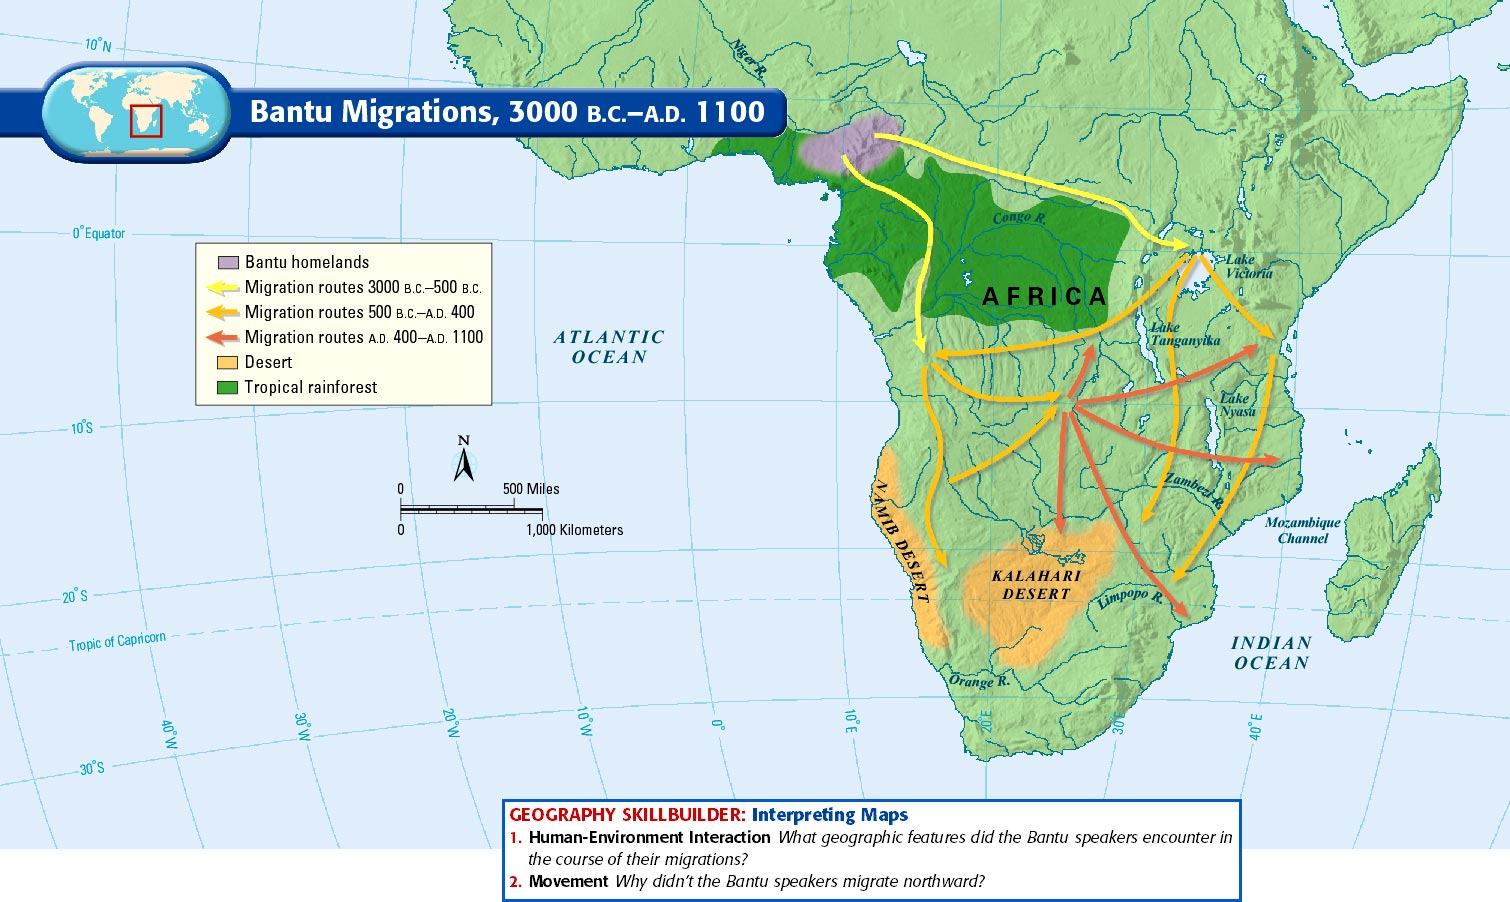 Brief history of the Bantu migration into South Africa